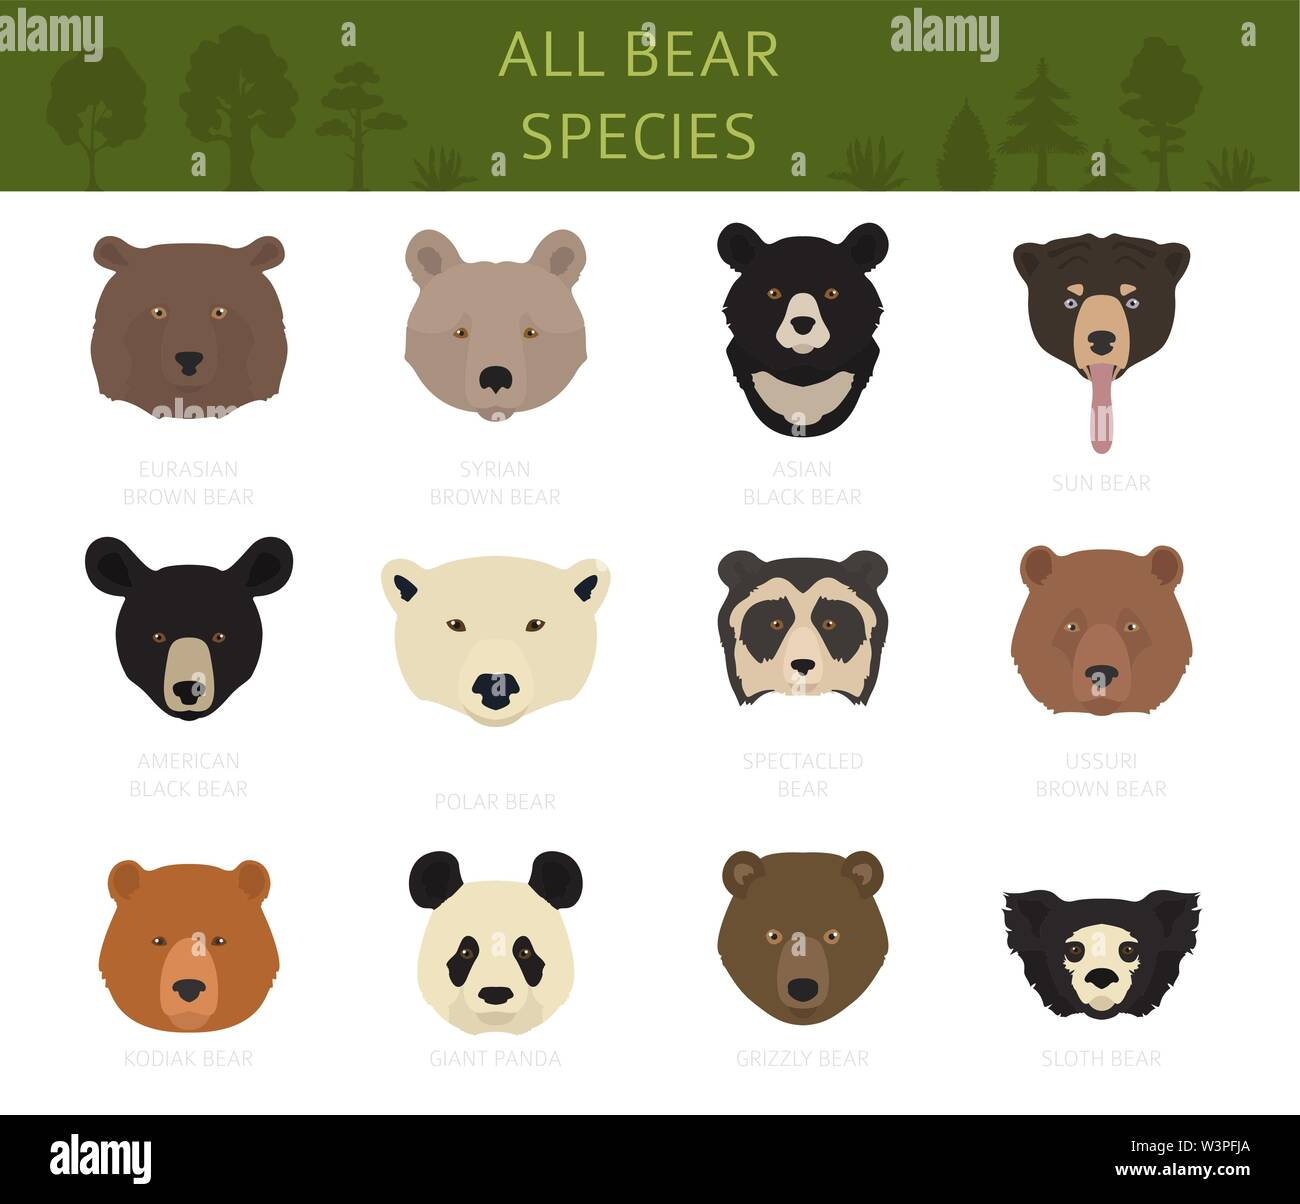 All world bear species in one set. Bears collection. Vector illustration - Stock Image